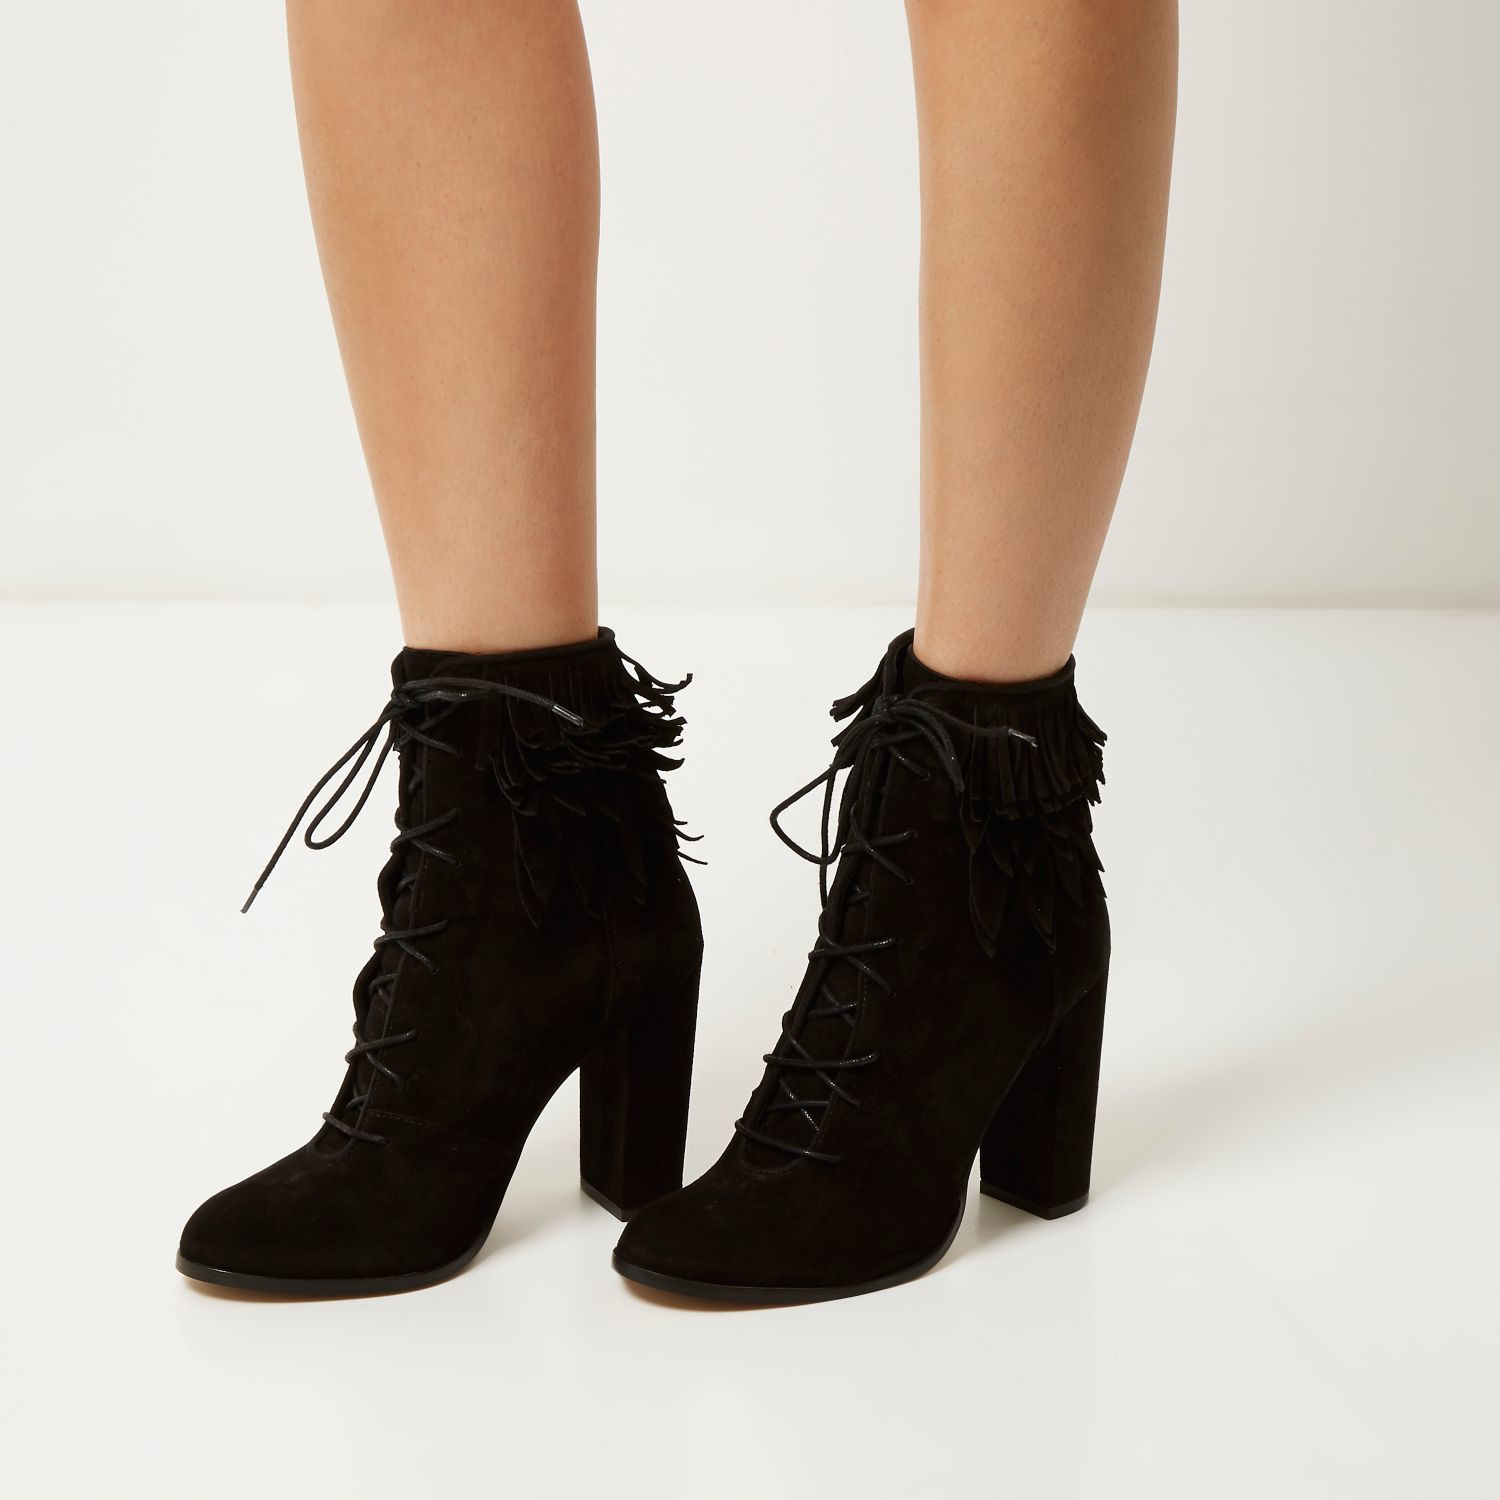 River island Black Suede Lace-up Fringed Heeled Boots in Black | Lyst